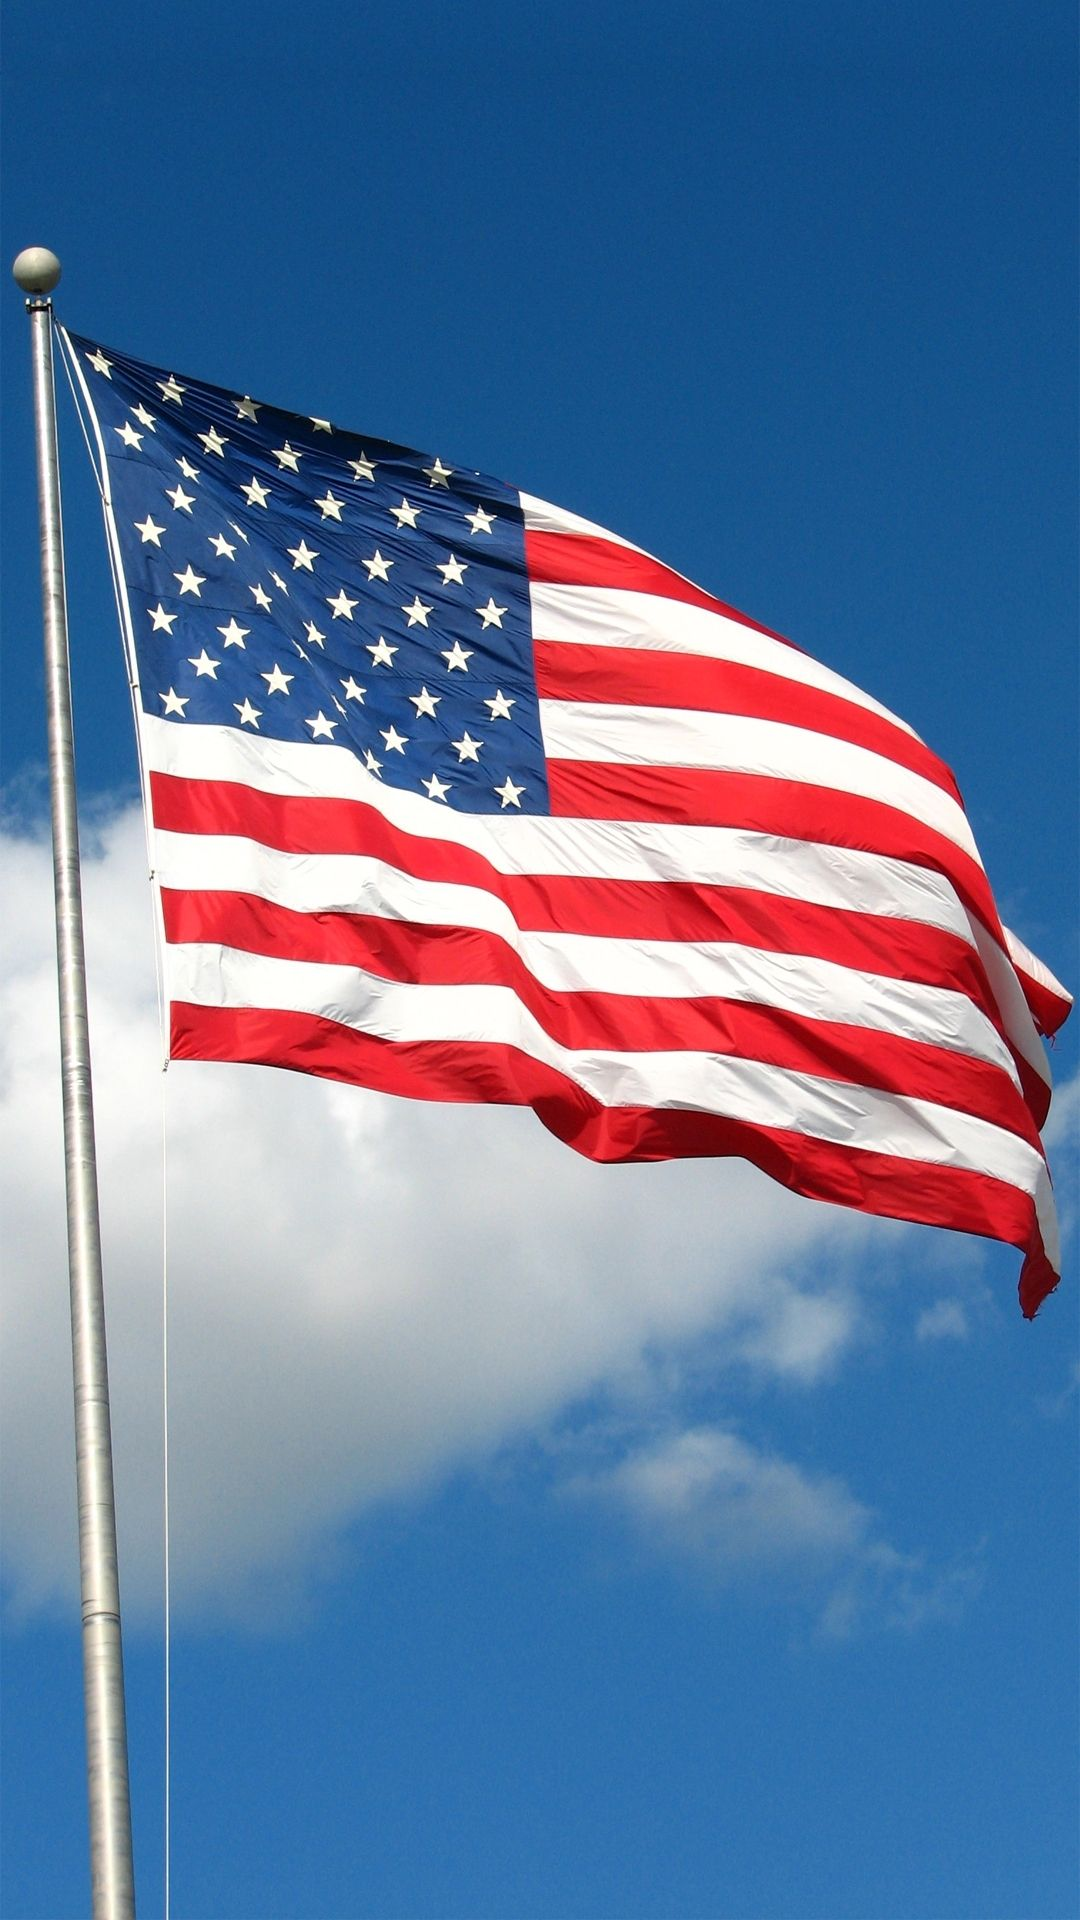 10 Latest American Flag Wallpaper Android FULL HD 1080p